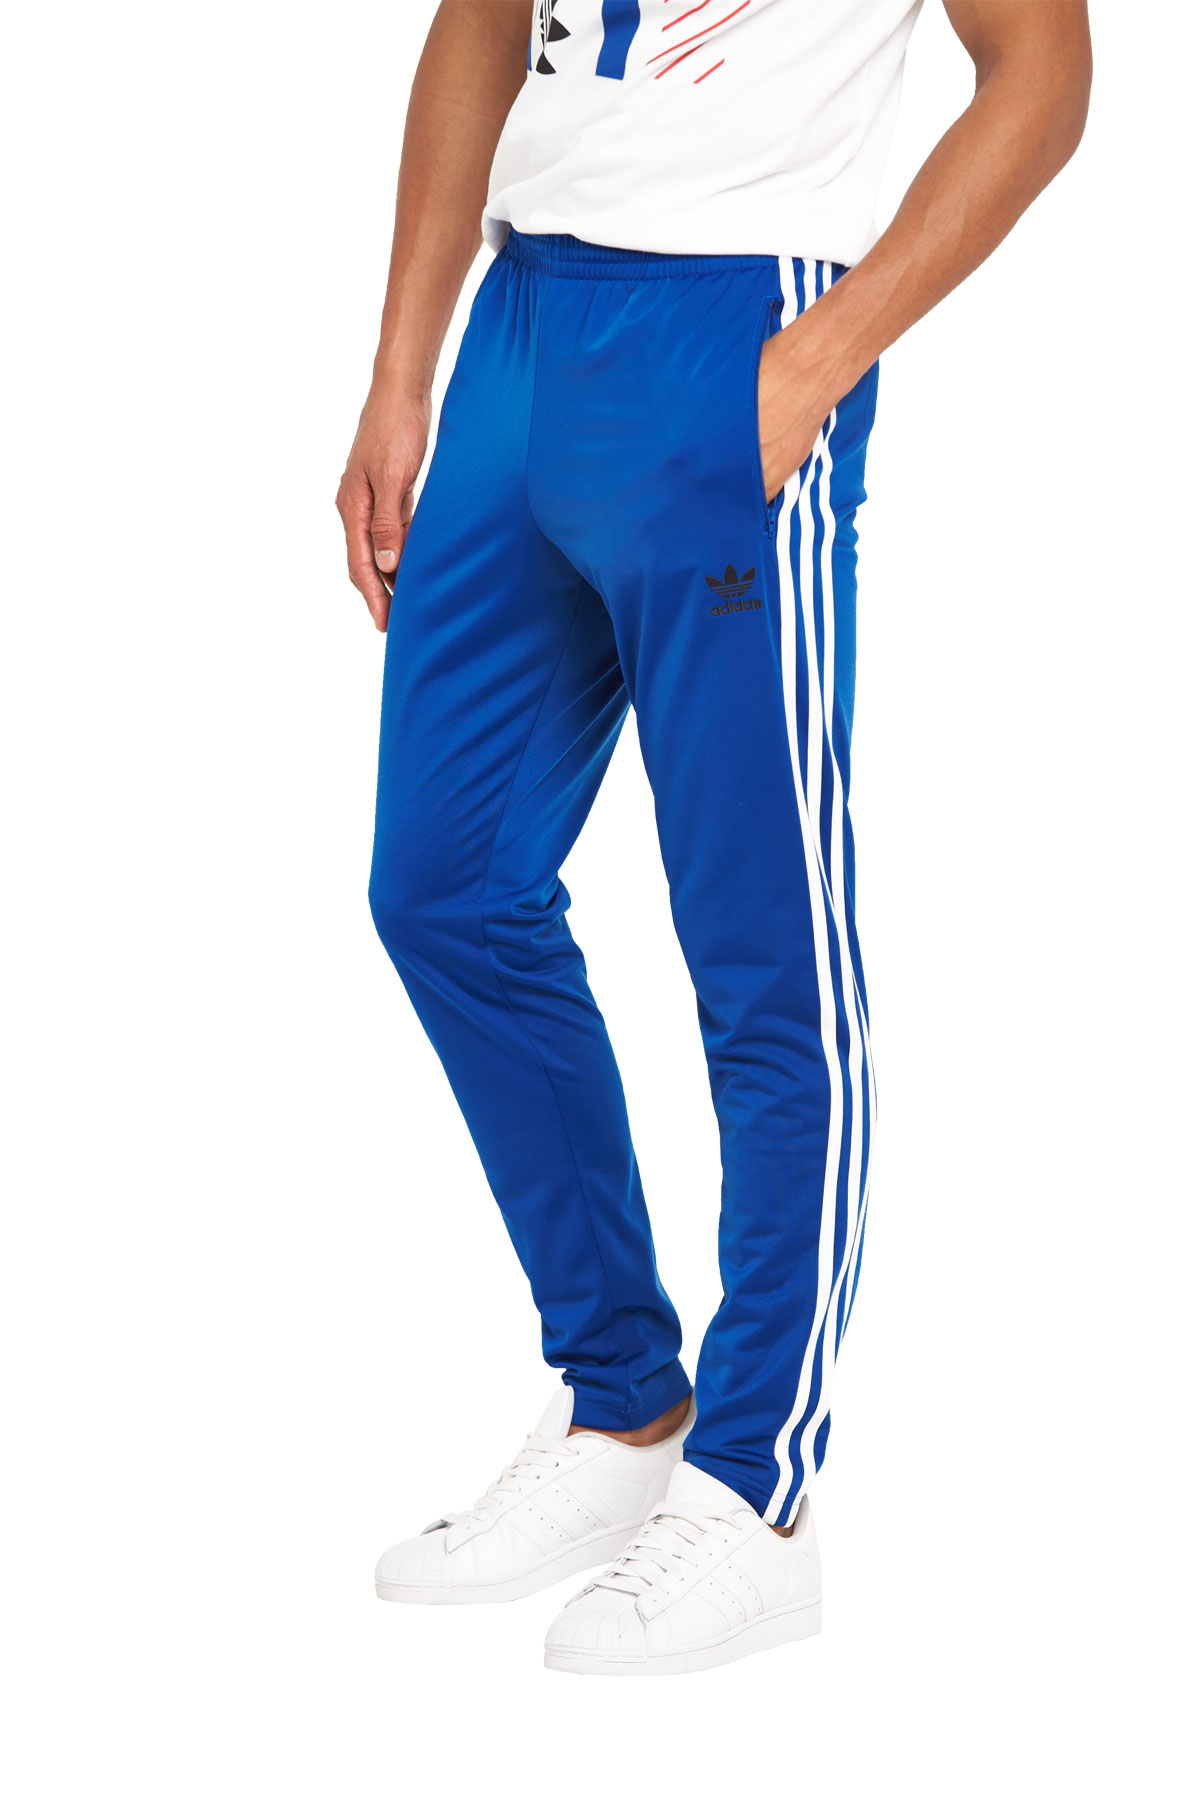 Adidas Originals Open Hen Track Pants